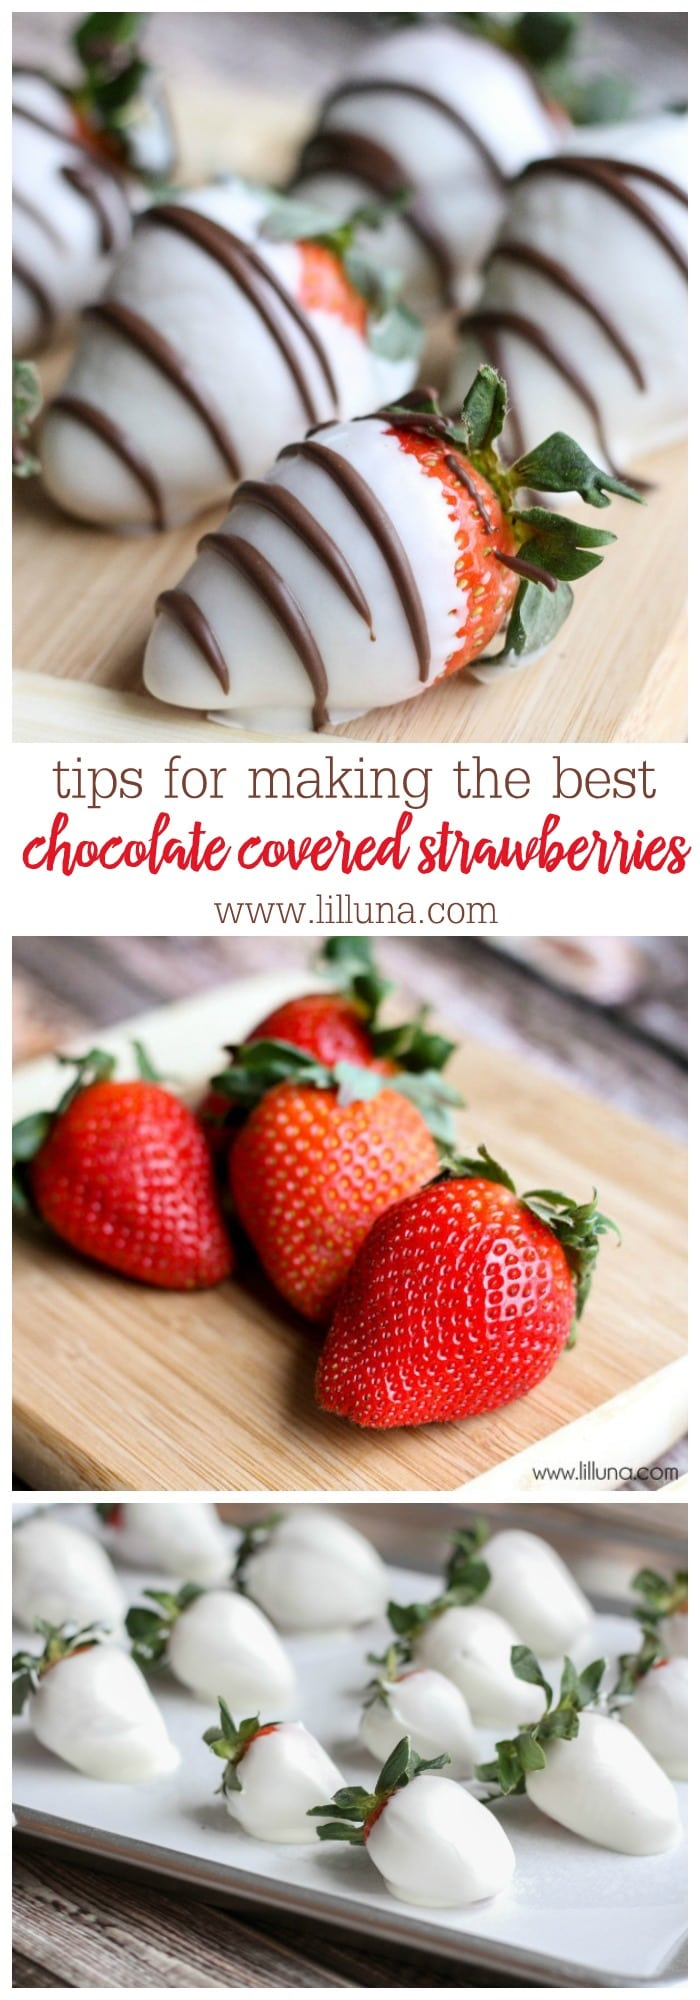 Tips on How to Make Perfect Chocolate Covered Strawberries - one our favorite treat recipes!